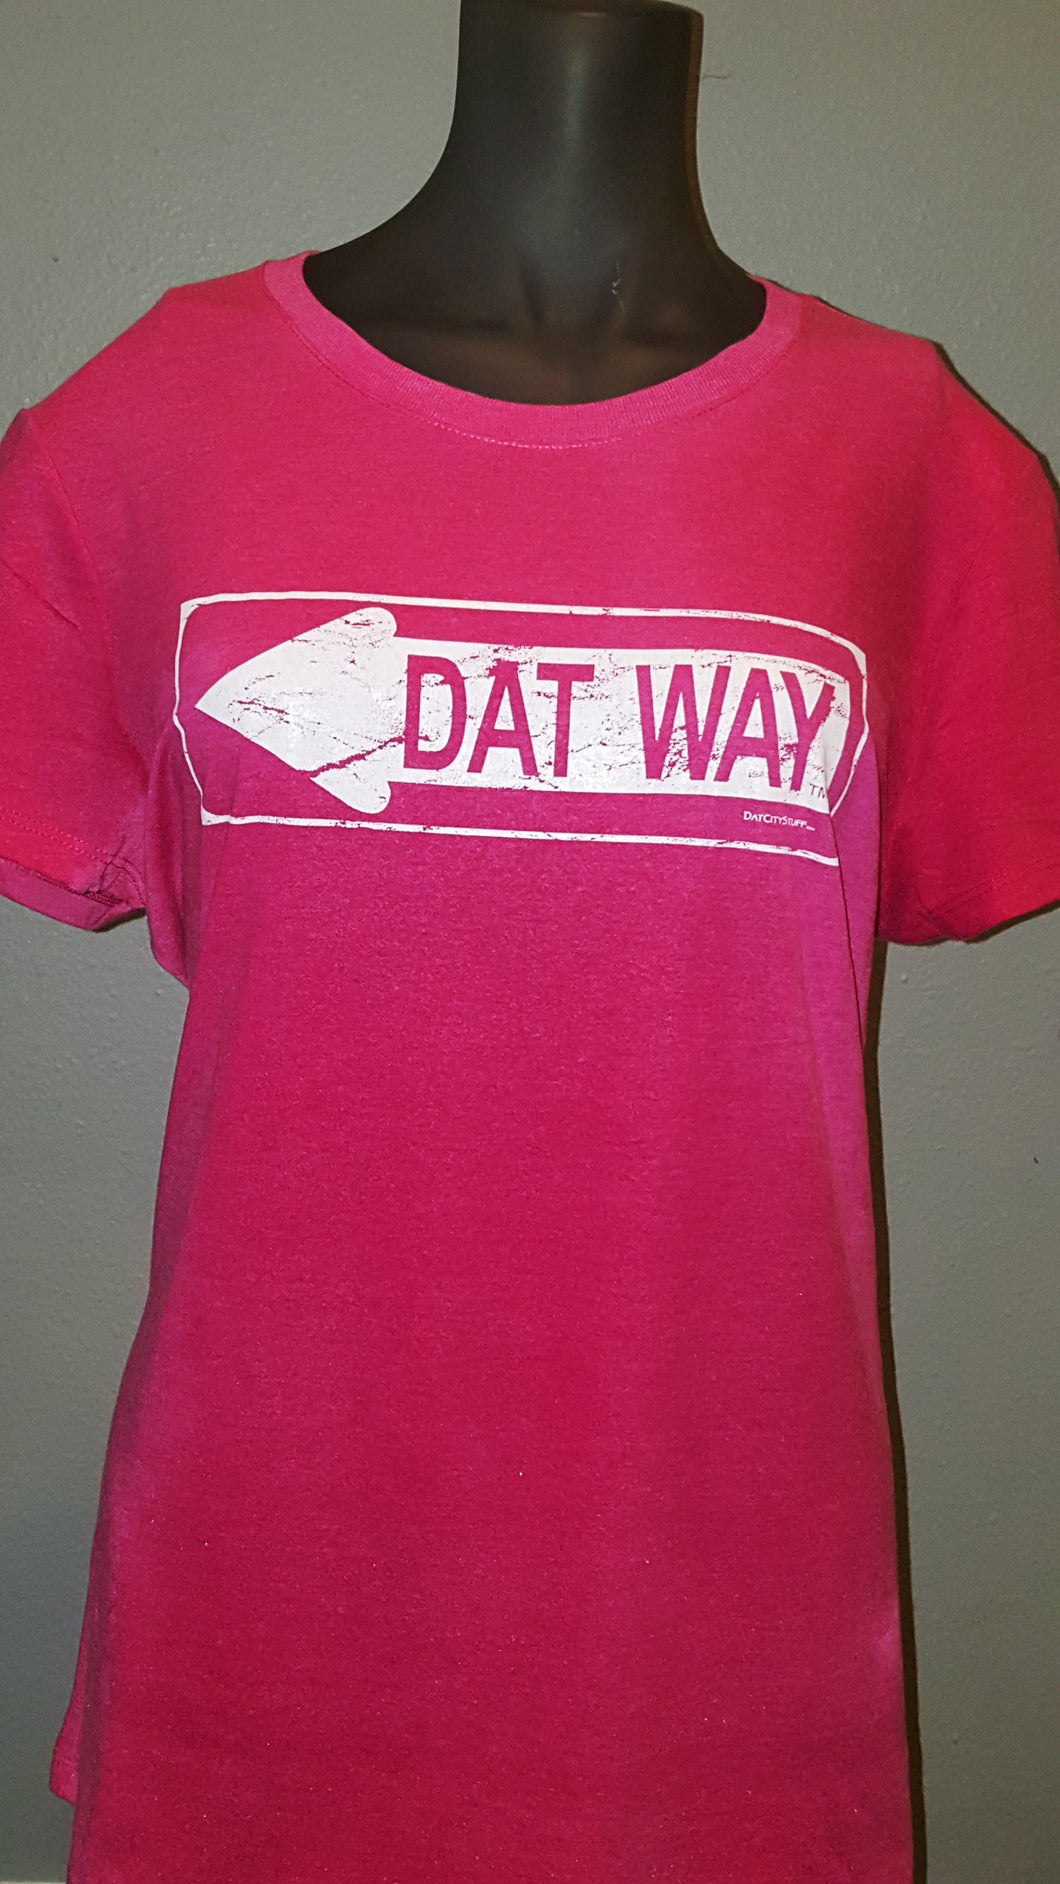 Dat Way T-Shirt - Women